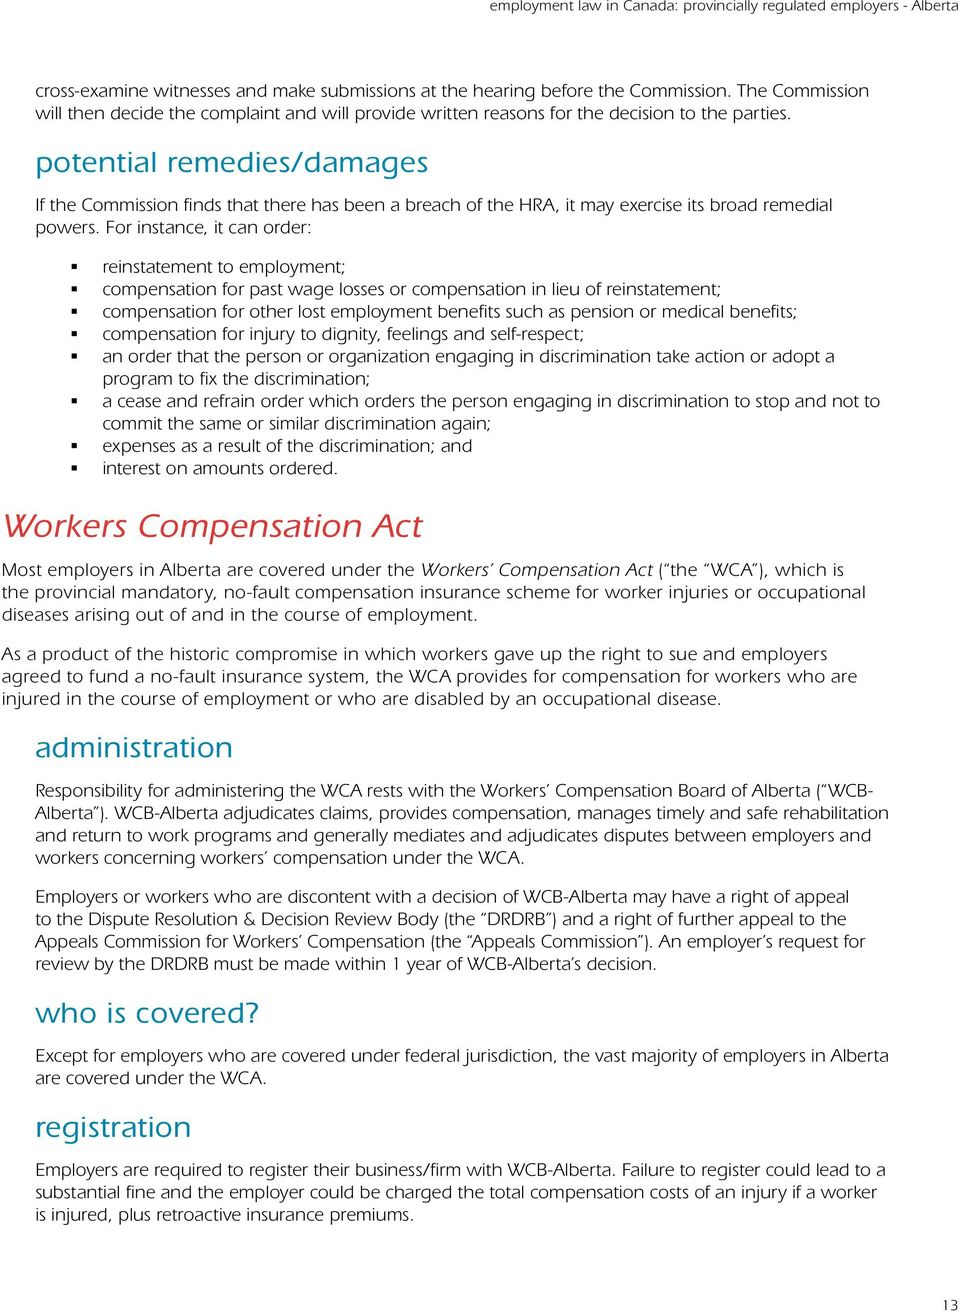 For instance, it can order: reinstatement to employment; compensation for past wage losses or compensation in lieu of reinstatement; compensation for other lost employment benefits such as pension or